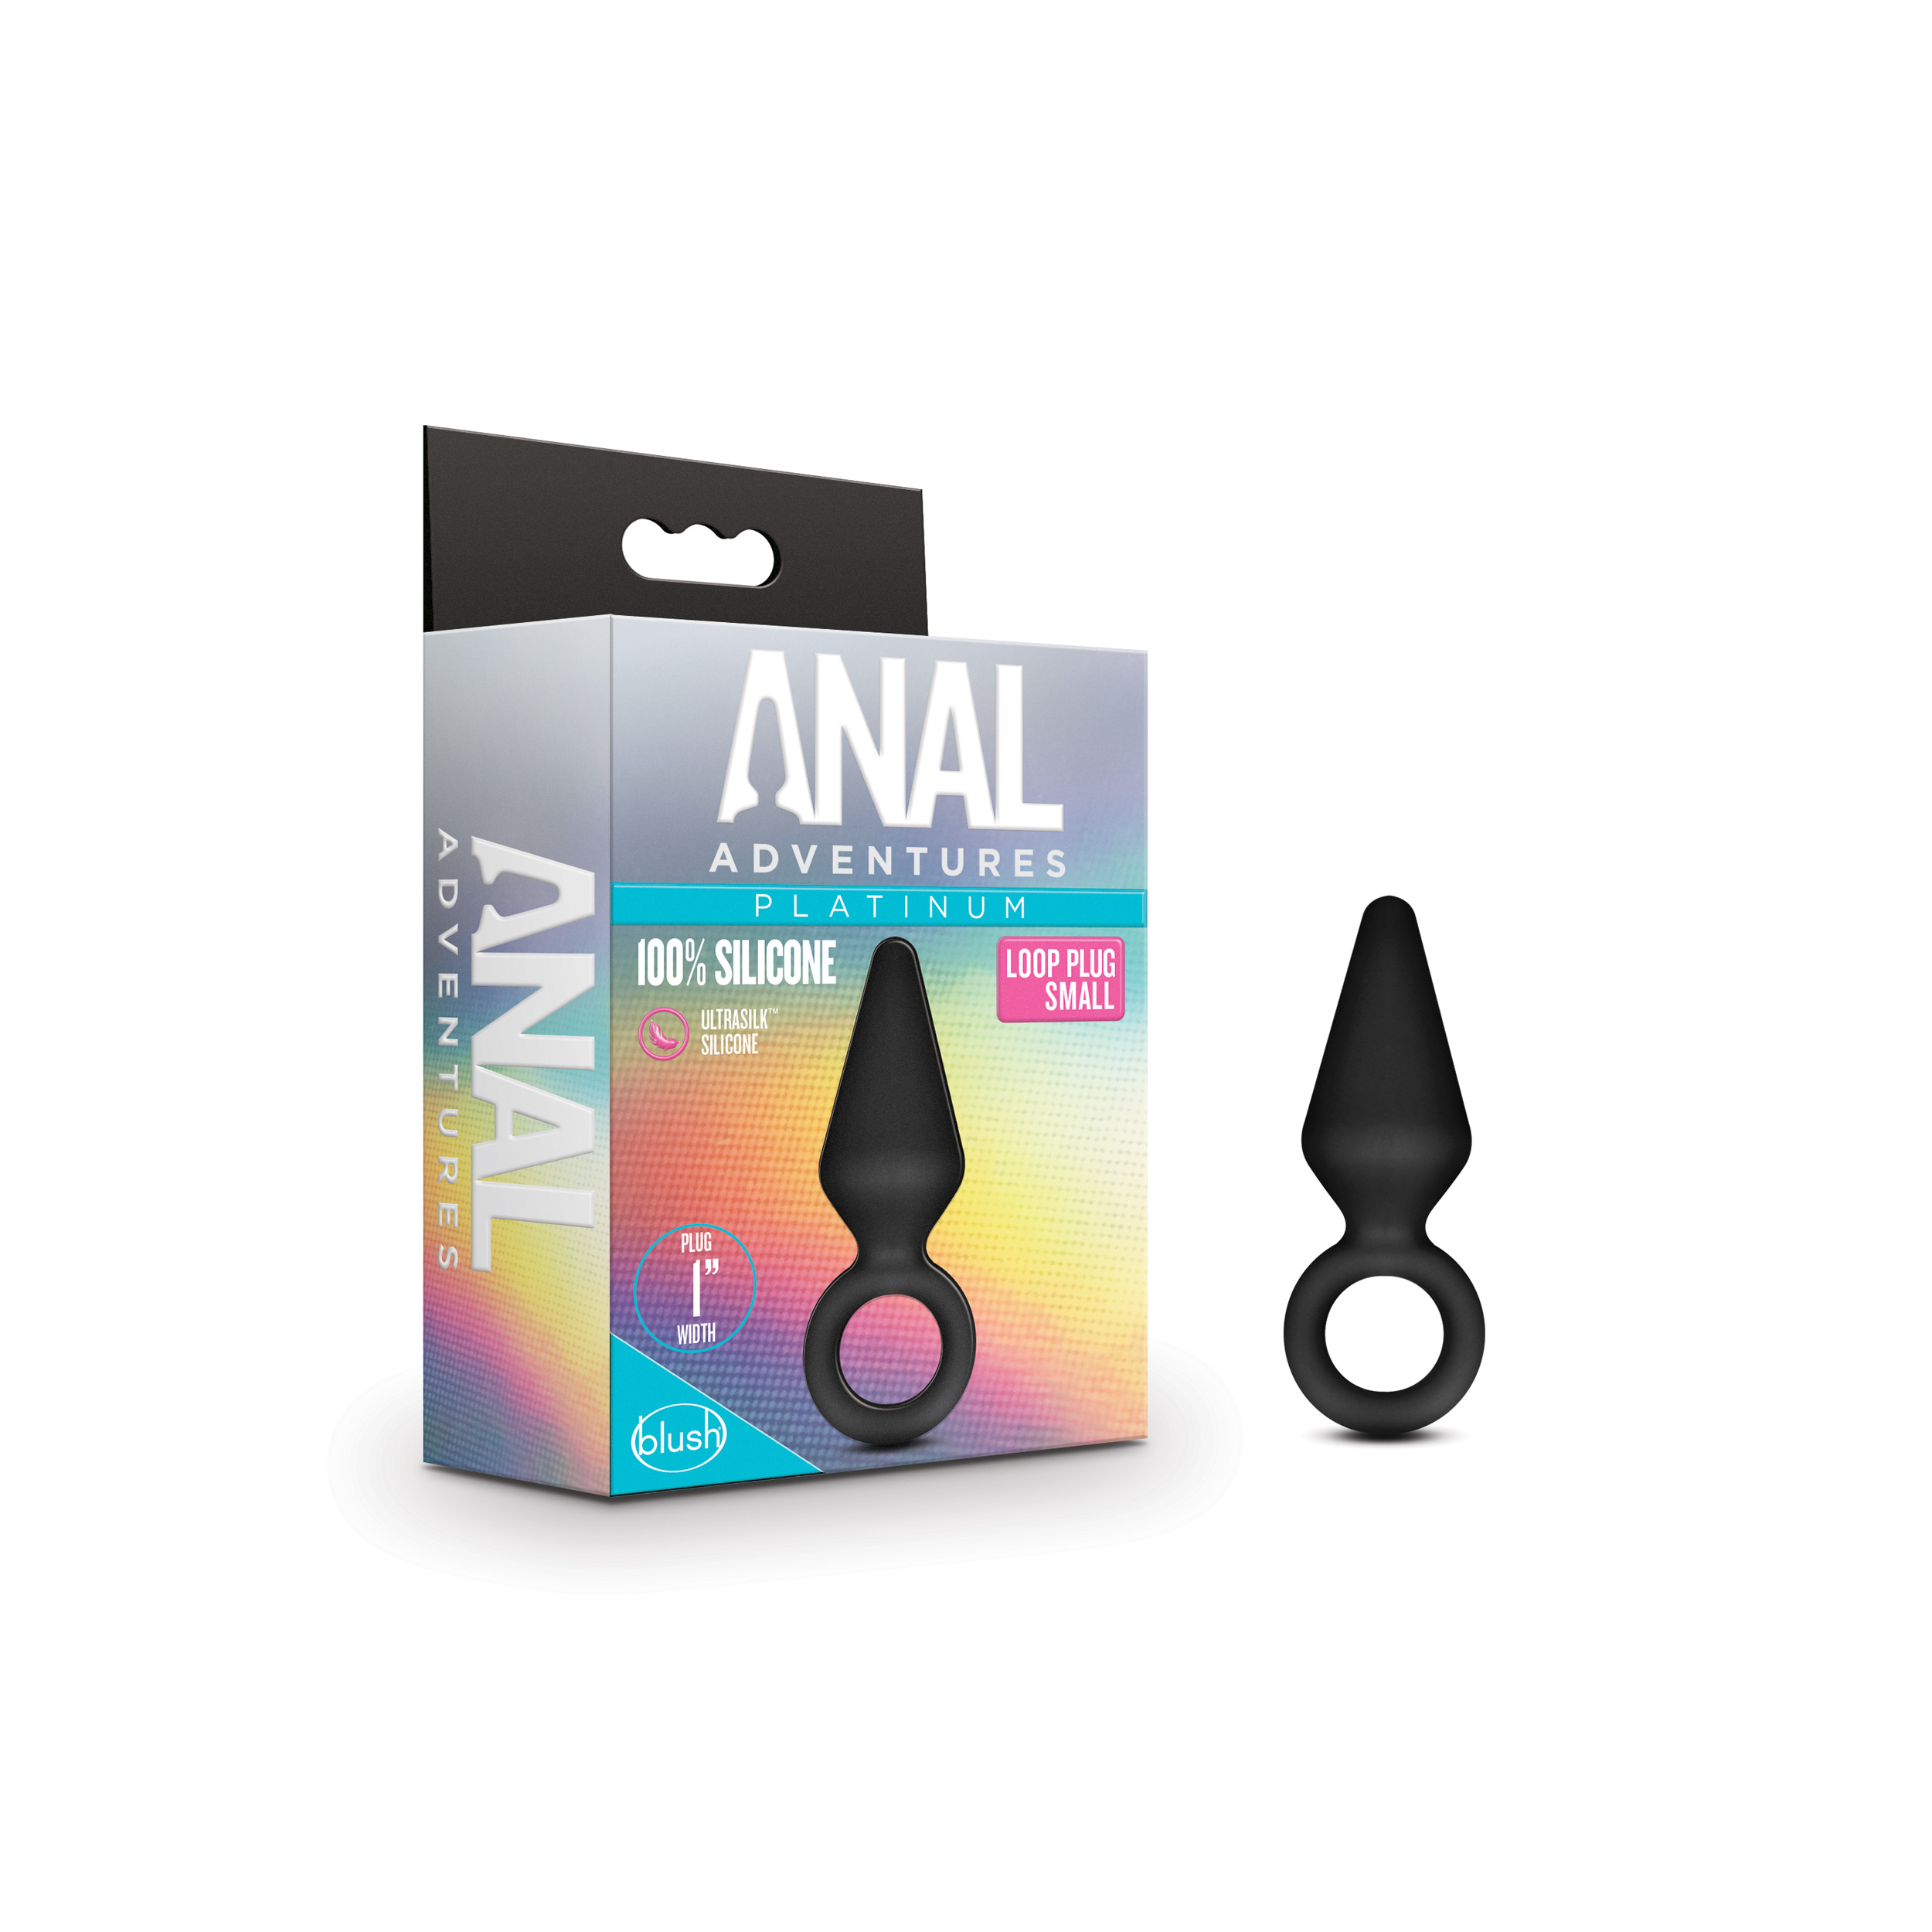 Anal Adventures Platinum - Silicone Loop Plug - Small - Black